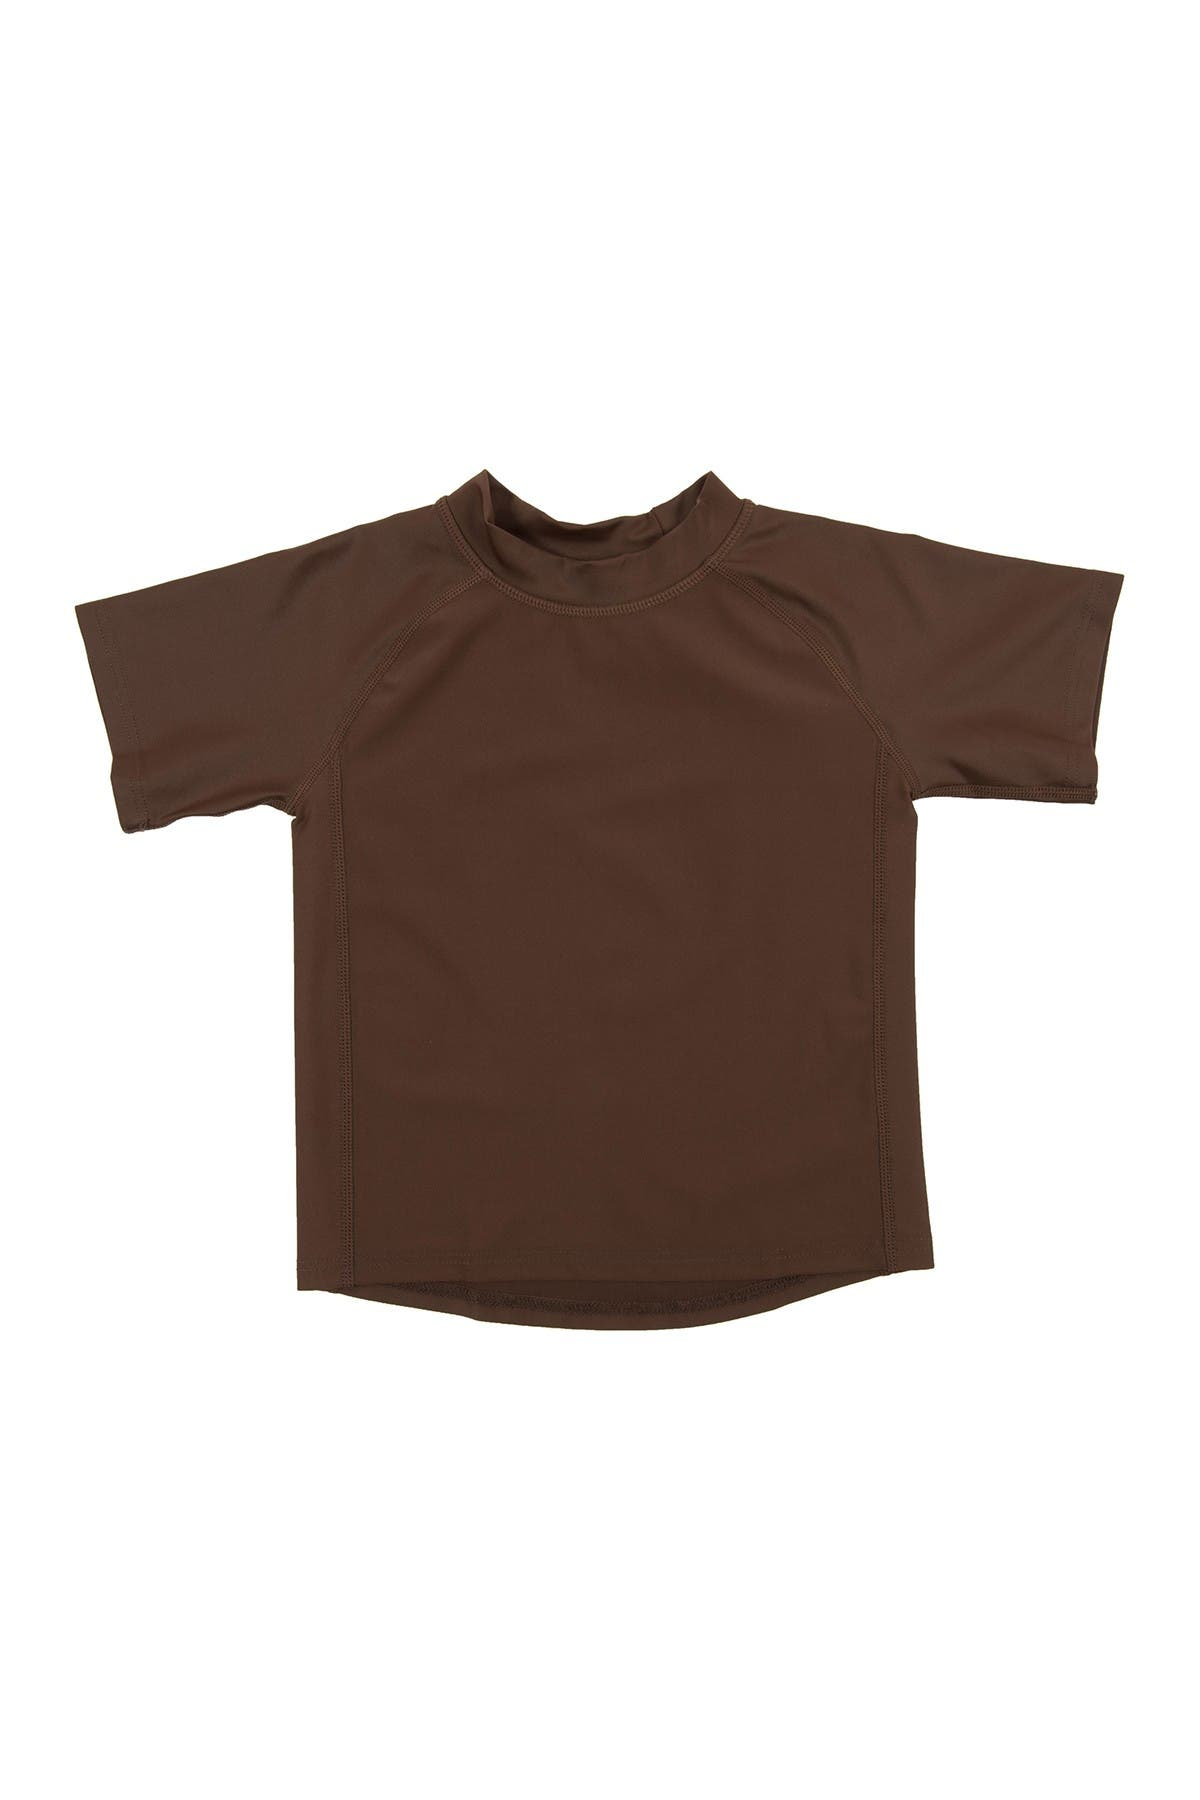 Image of Leveret Short Sleeve UPF +50 Rash Guard - Brown